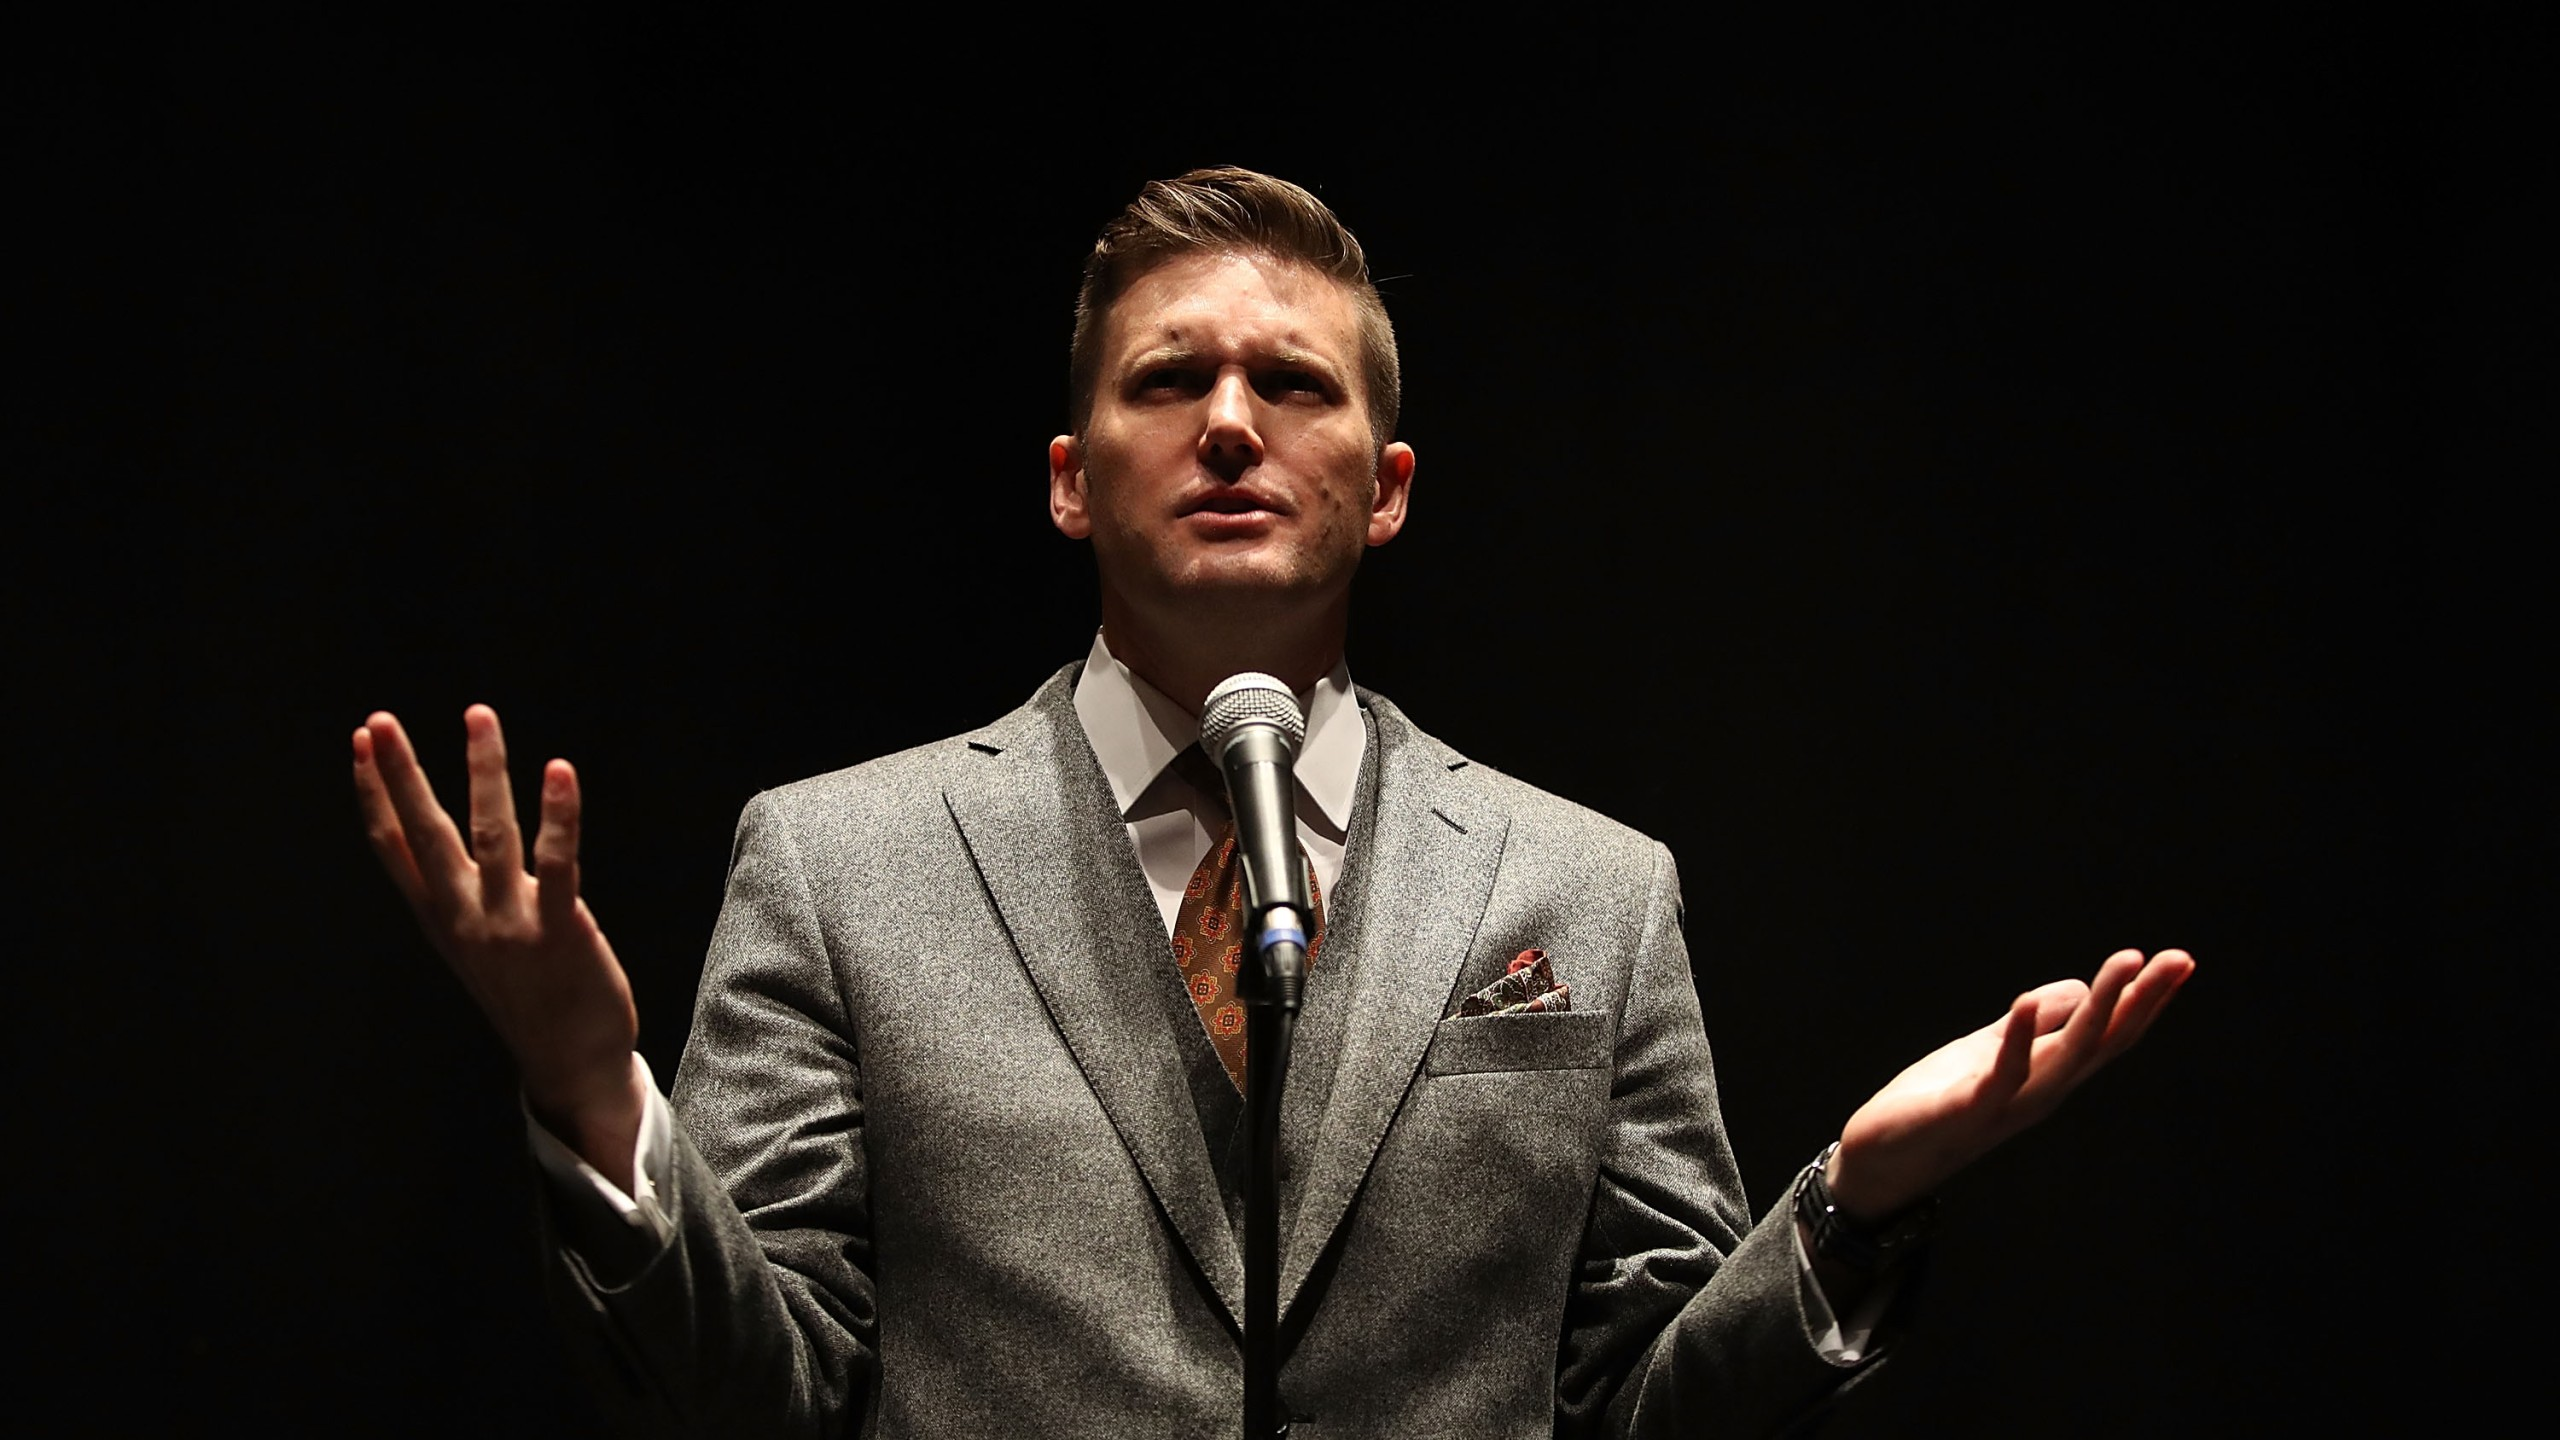 White nationalist Richard Spencer speaks during a press conference at the Curtis M. Phillips Center for the Performing Arts on Oct. 19, 2017 in Gainesville, Florida. (Credit: Joe Raedle/Getty Images)